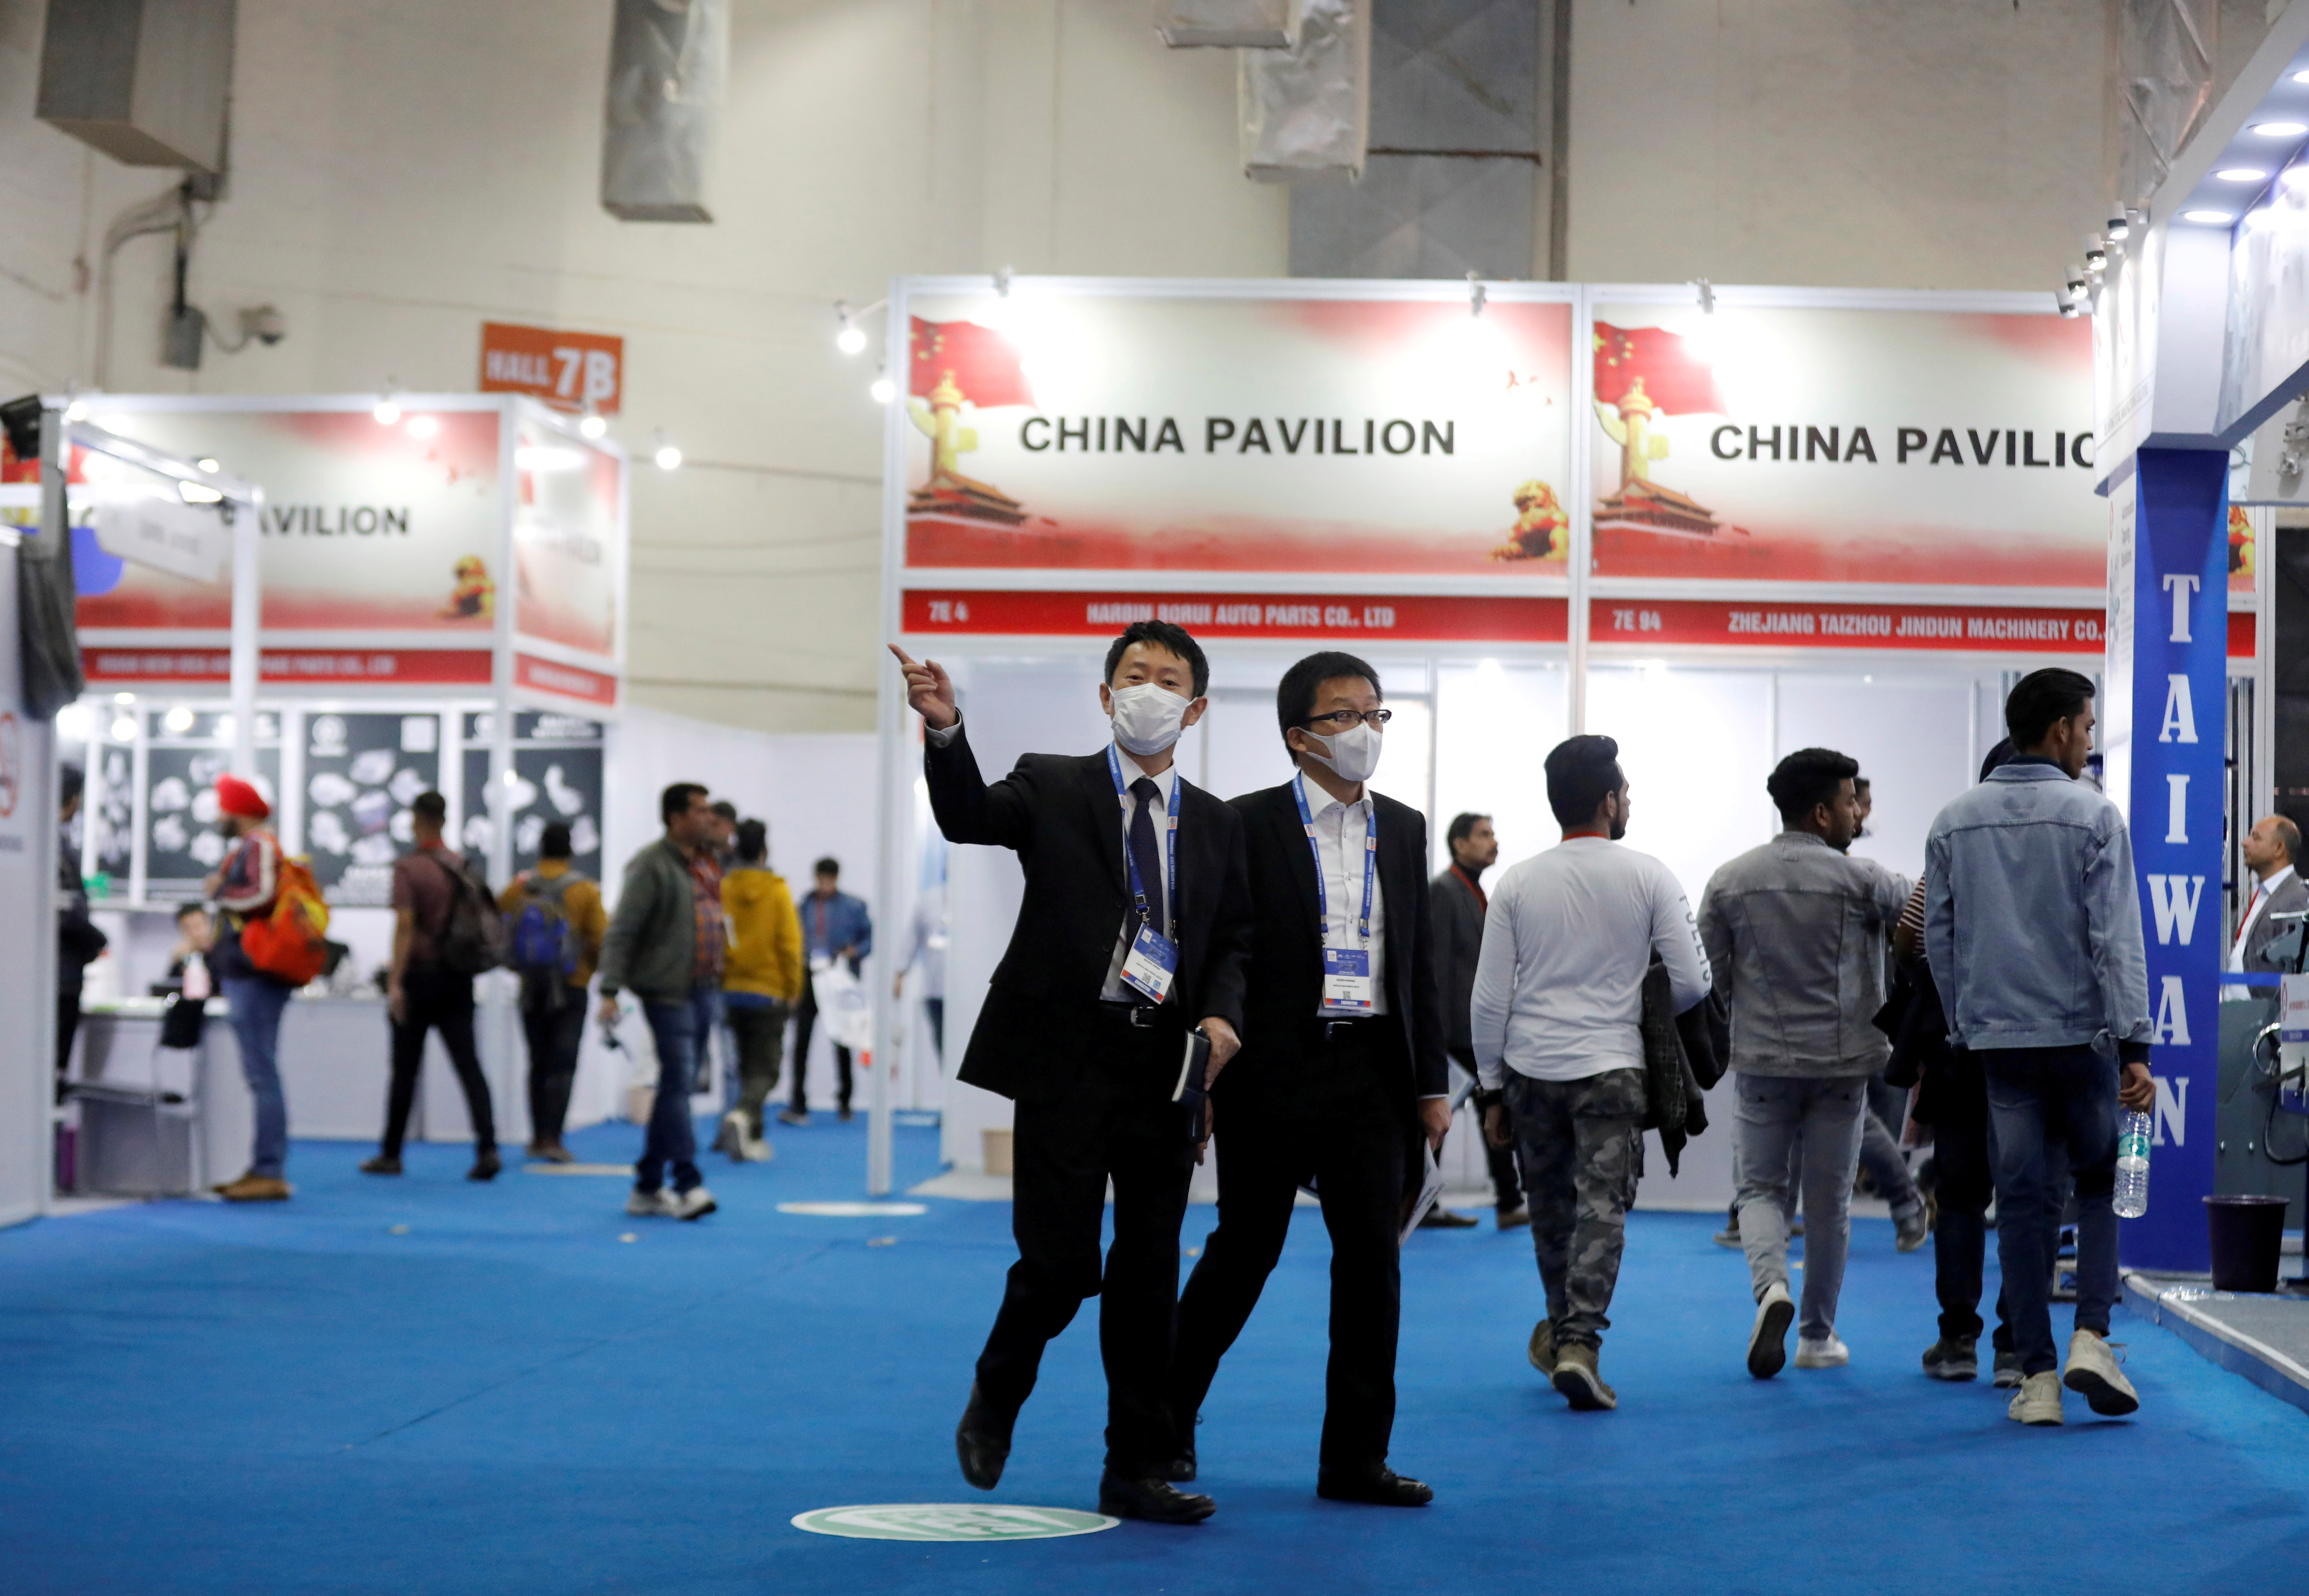 People wearing mask are seen near the stalls inside the China pavilion at the India Auto Expo 2020 - Components in New Delhi, India, February 6, 2020. REUTERS/Anushree Fadnavis/File Photo